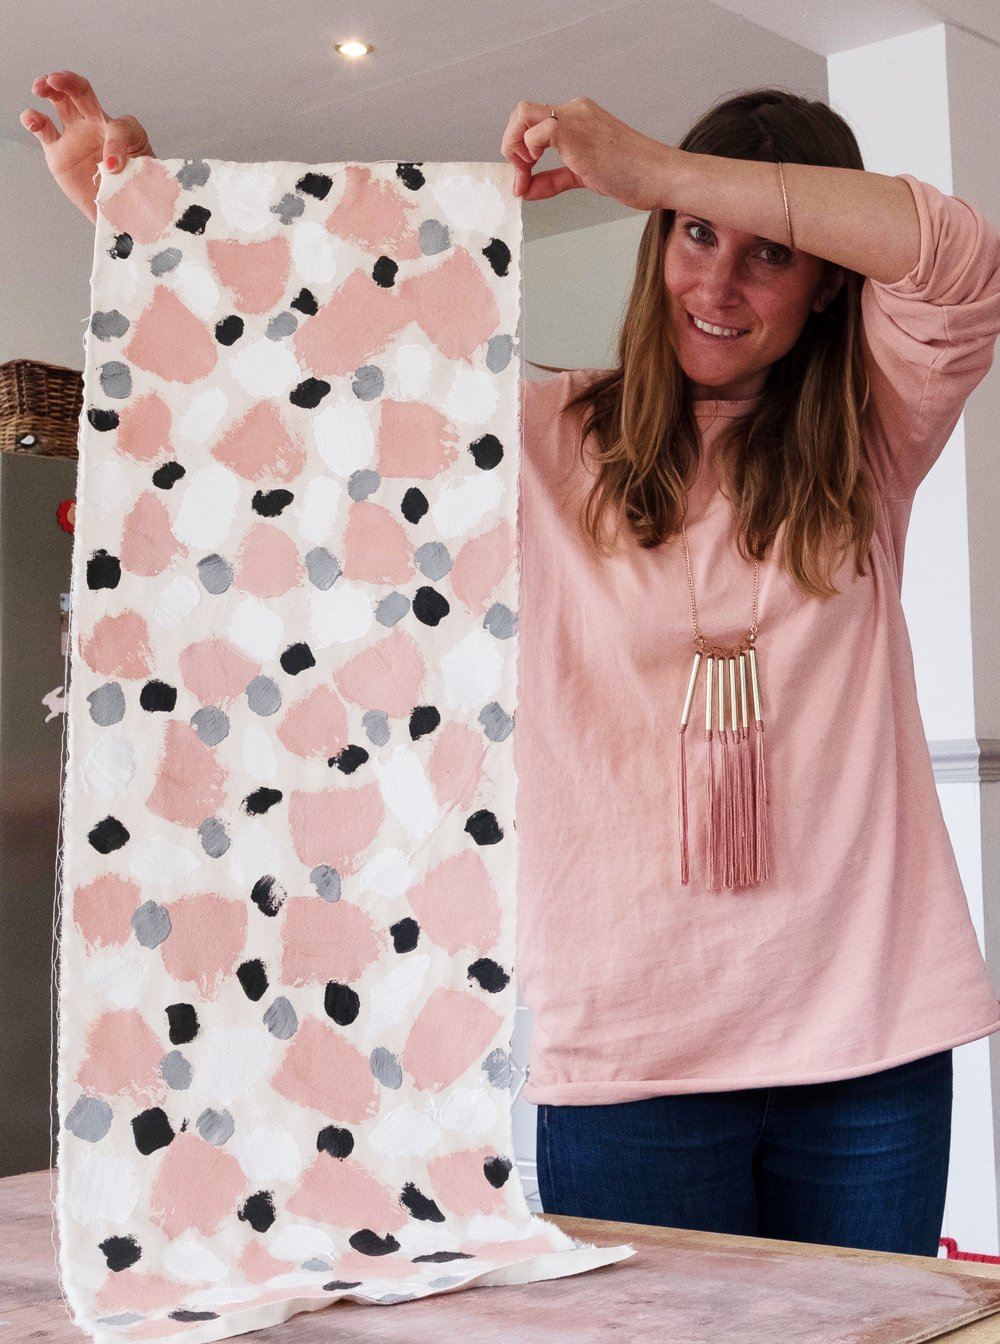 Anna at Camilla Pearl using Annie Sloan paint for a fabric project.JPG